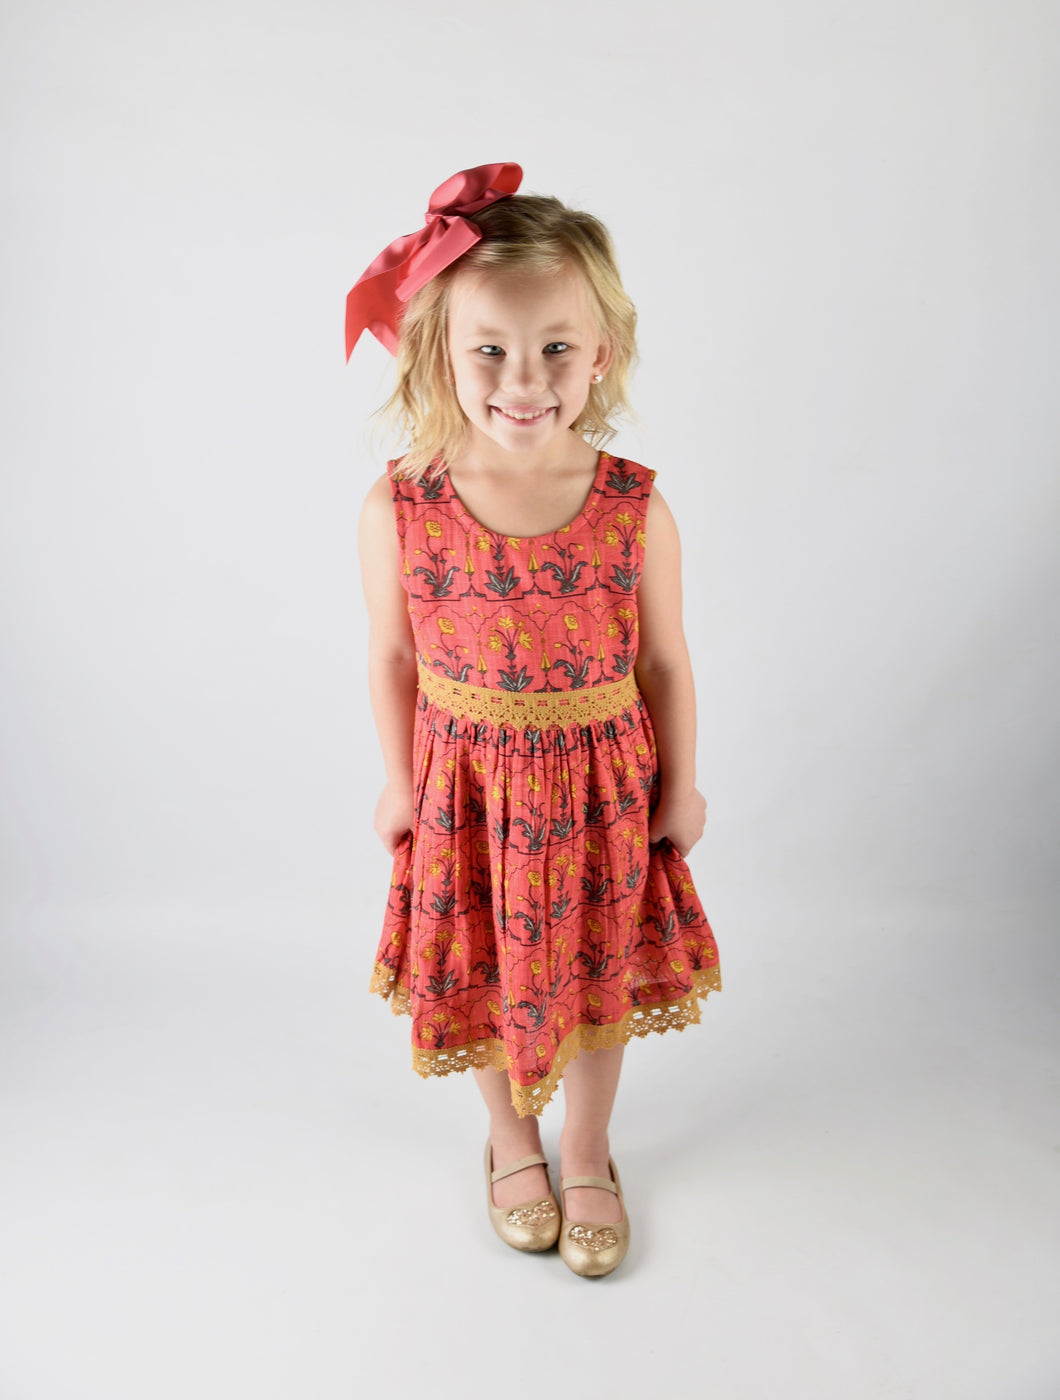 Peach and Yellow Print and Lace Detail Dress - Kids Wholesale Boutique Clothing, Dress - Girls Dresses, Yo Baby Wholesale - Yo Baby